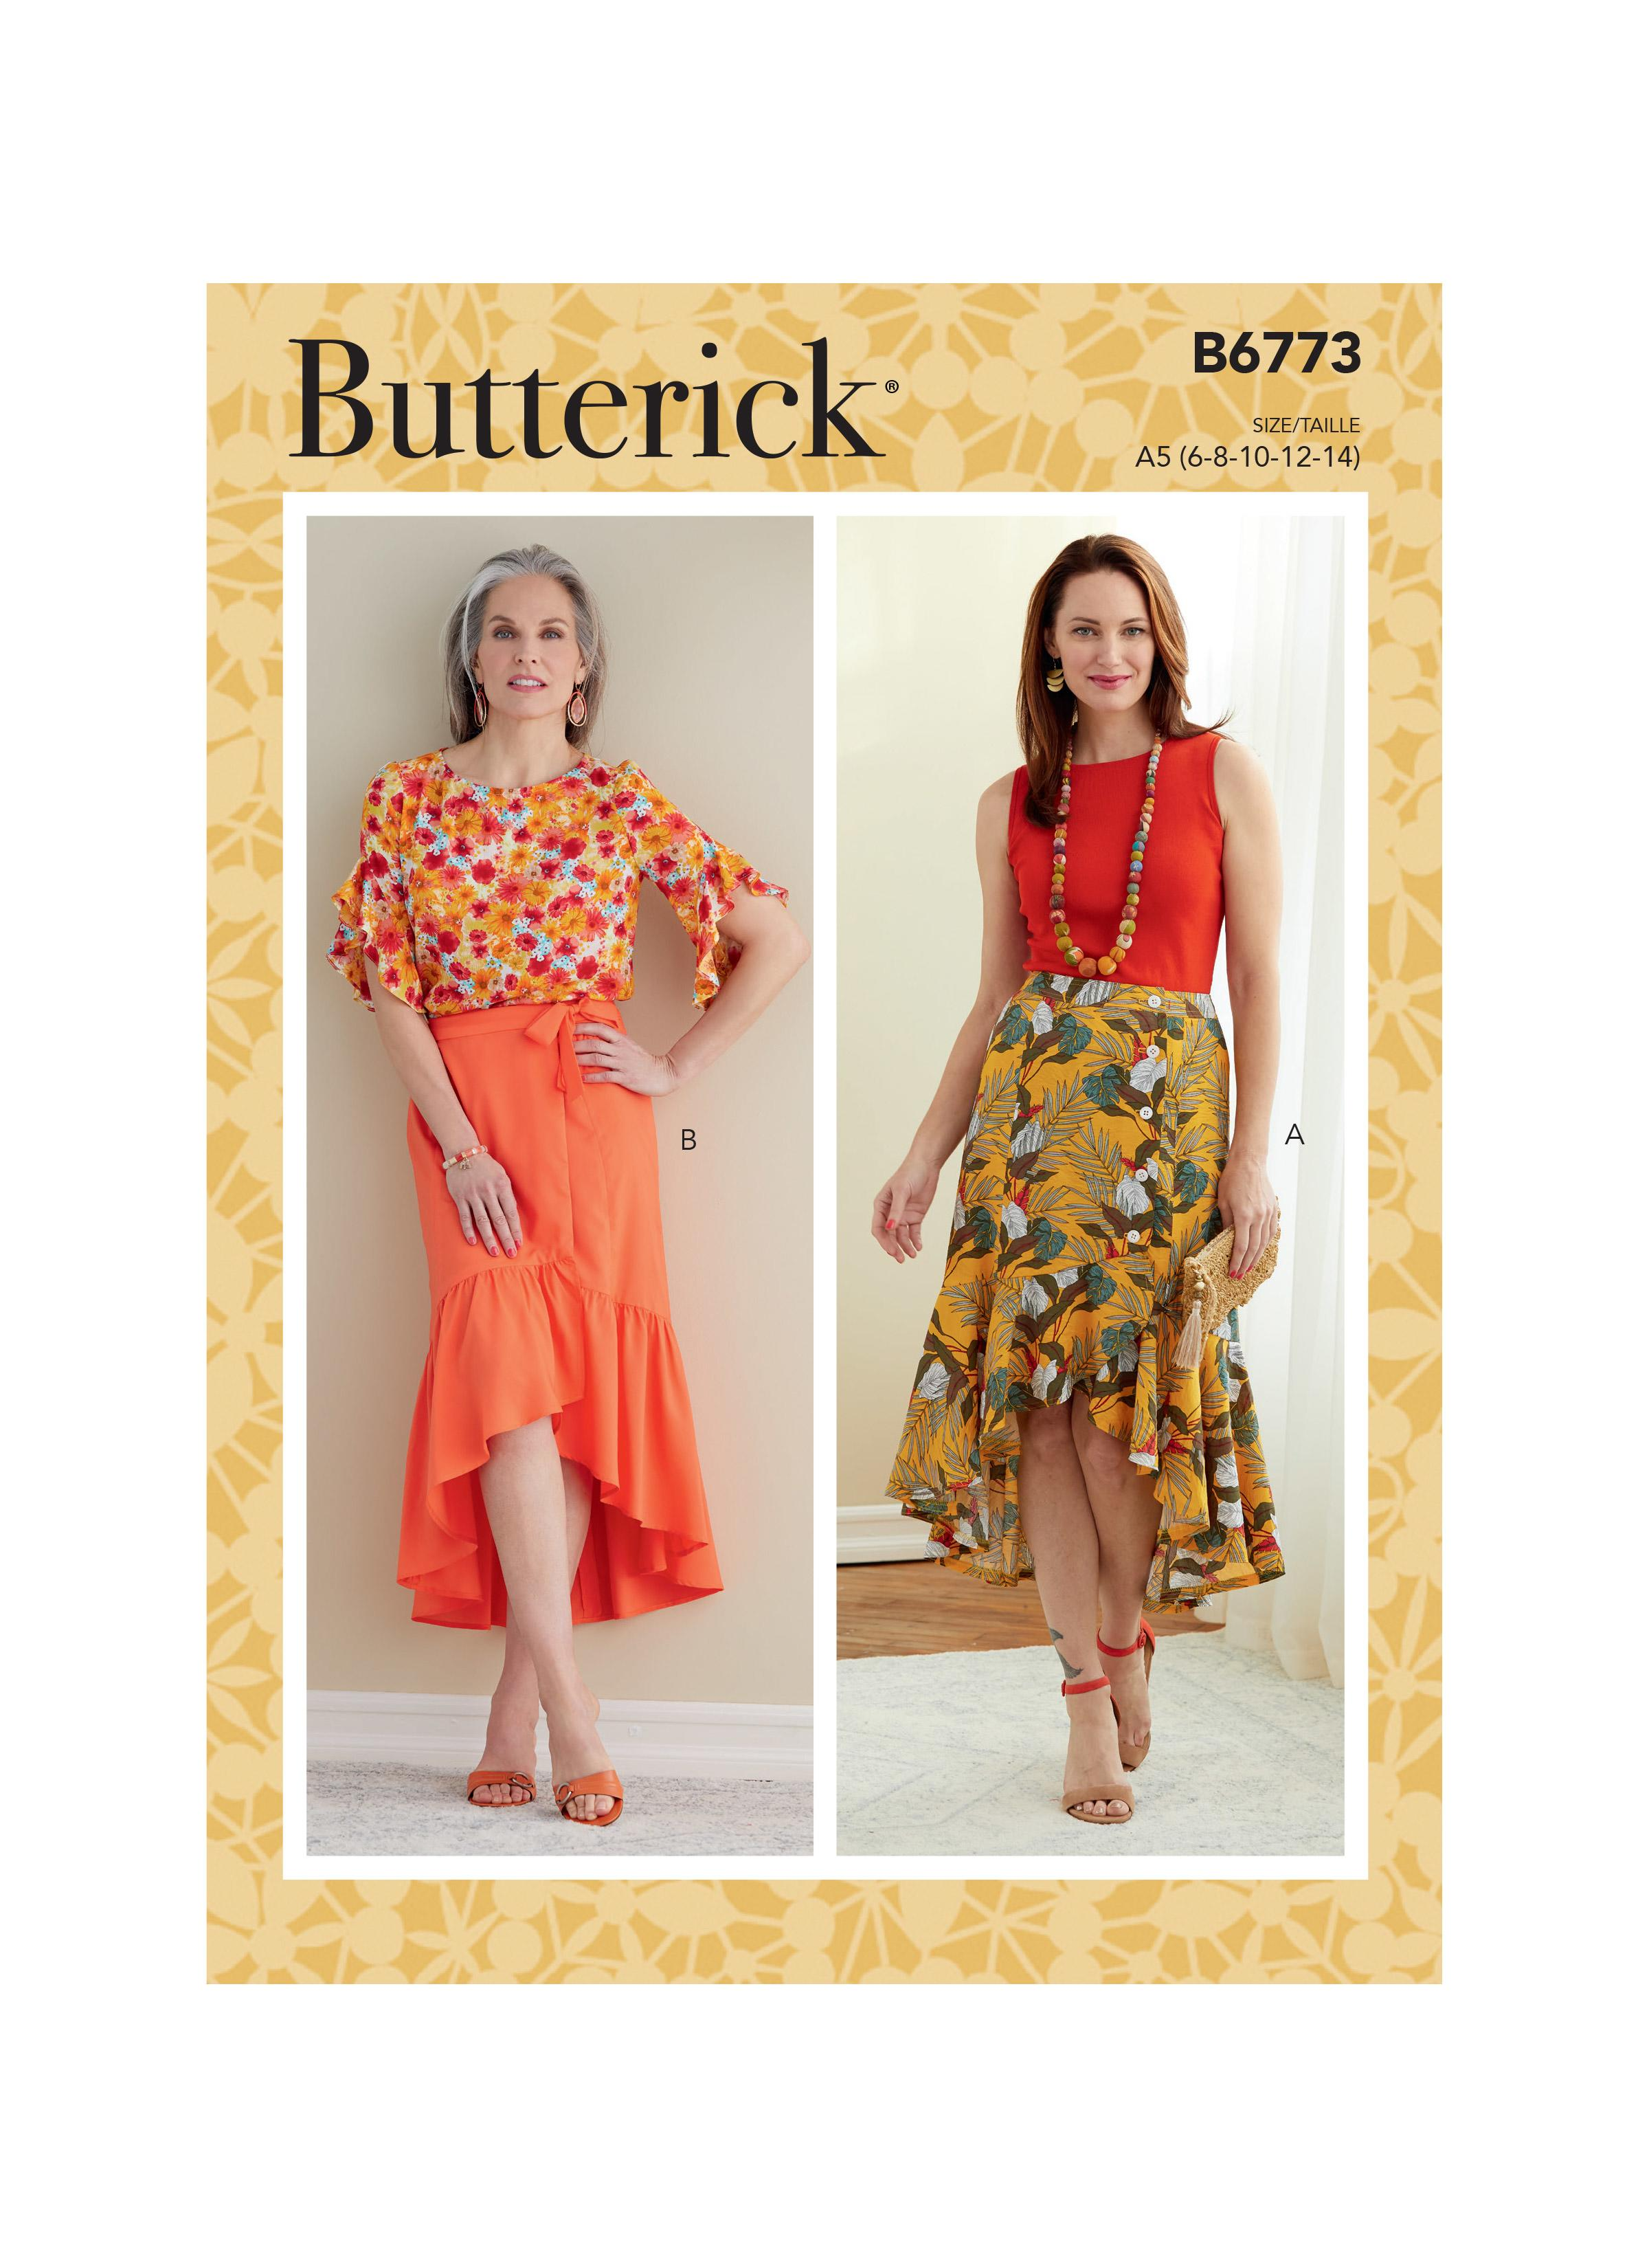 Butterick B6773 Misses' Skirt